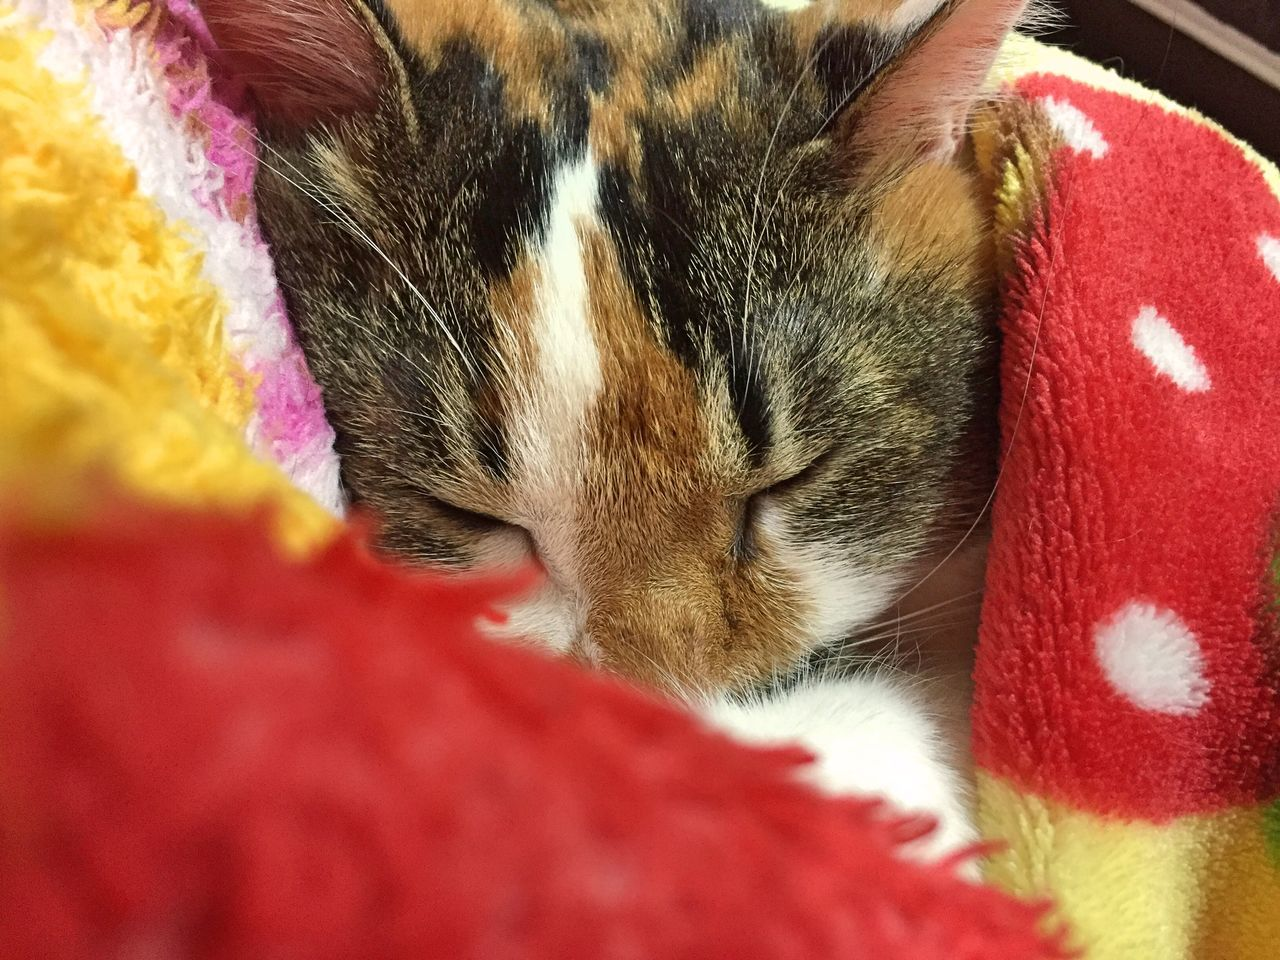 Sweet dream😽💤 My Cat ウチの姫様 Cat Lovers Cat♡ Relaxing EyeEm Animal Lover Goodnight Goodnight ♡